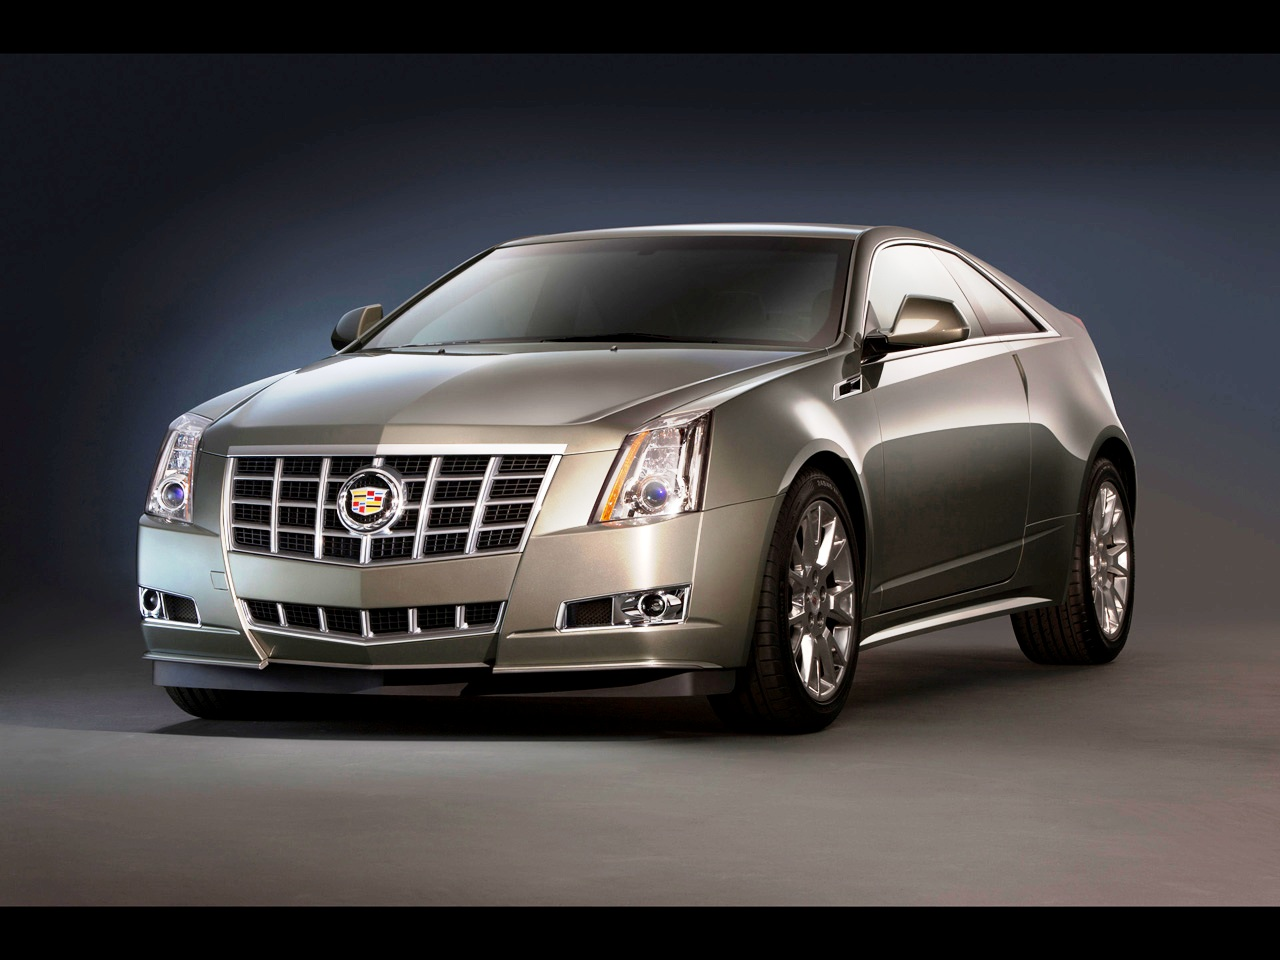 2013 Cadillac Cts Coupe Bussines News Hot Car